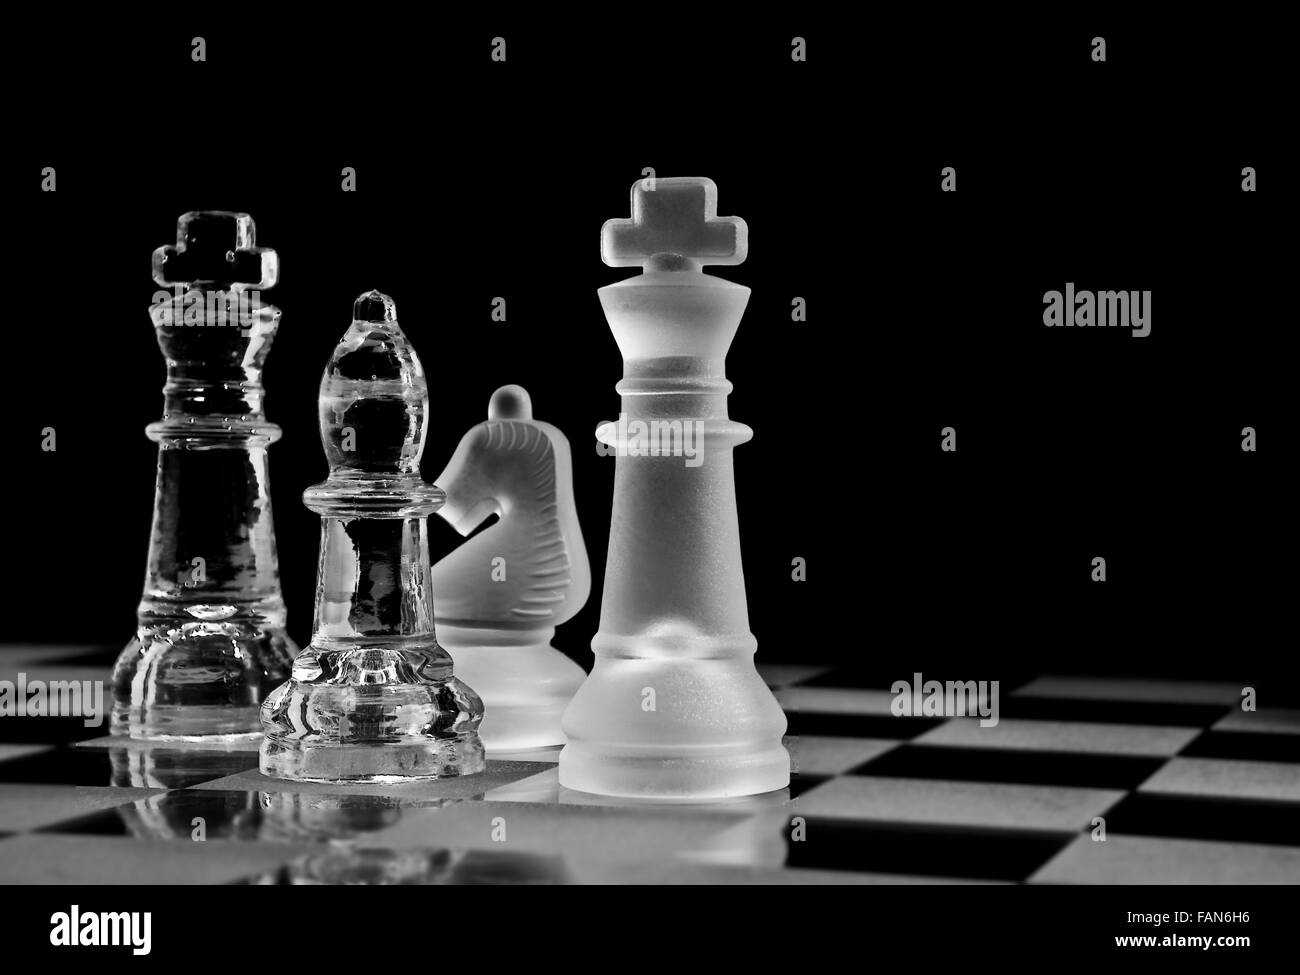 Chess Pieces on a glass chessboard - Stock Image